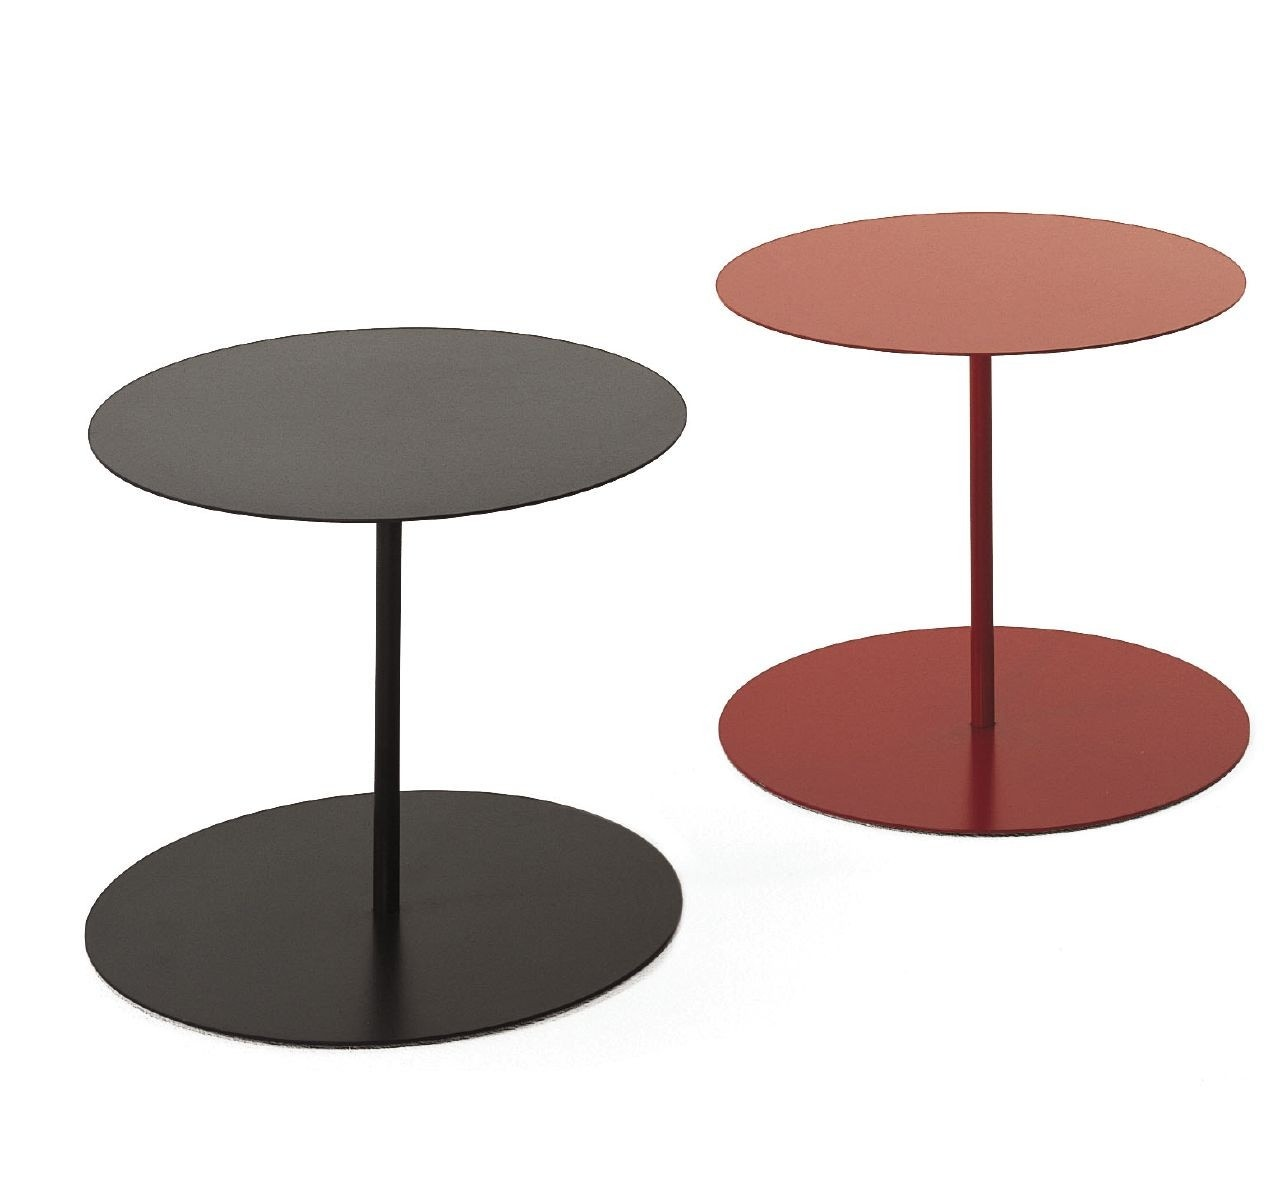 vitra occasional table trendy tavolino occasional table ltr by vitra design charles eames with. Black Bedroom Furniture Sets. Home Design Ideas